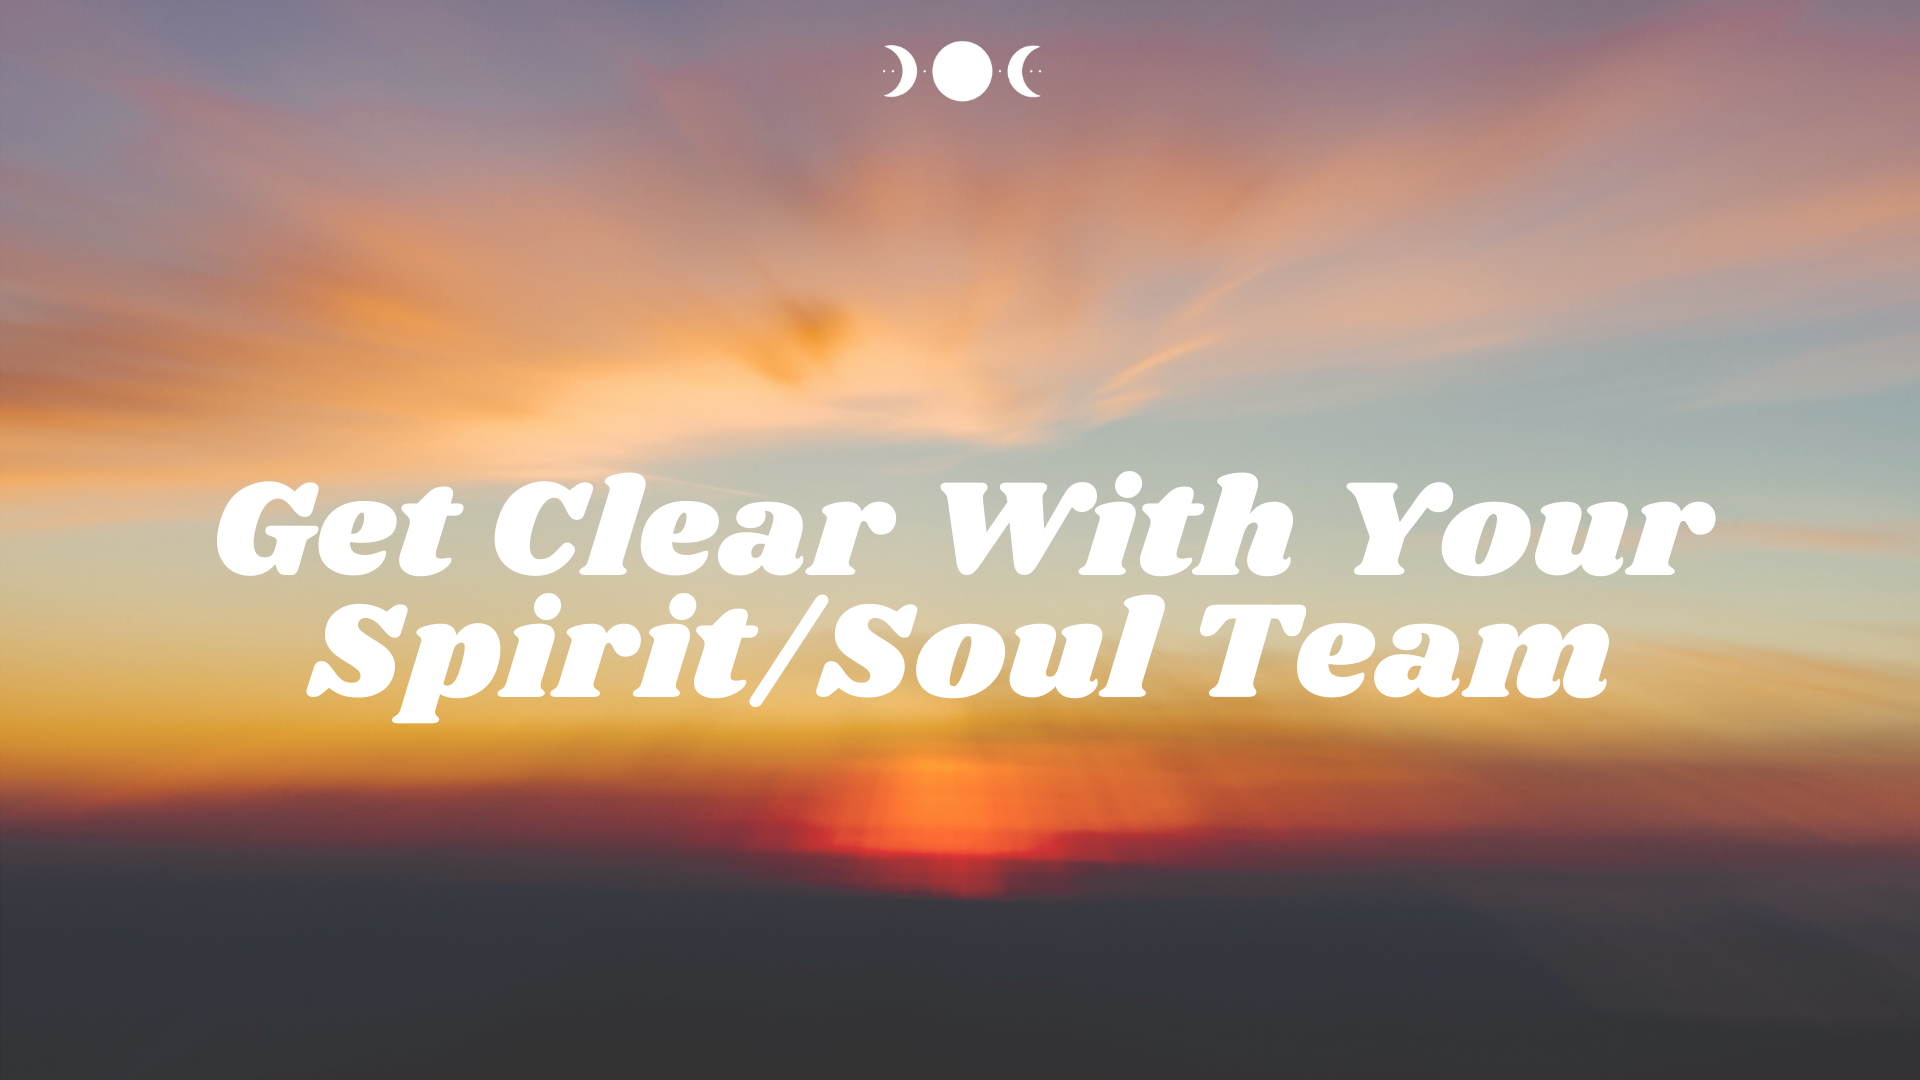 Get Clear With Your Spirit/Soul Team